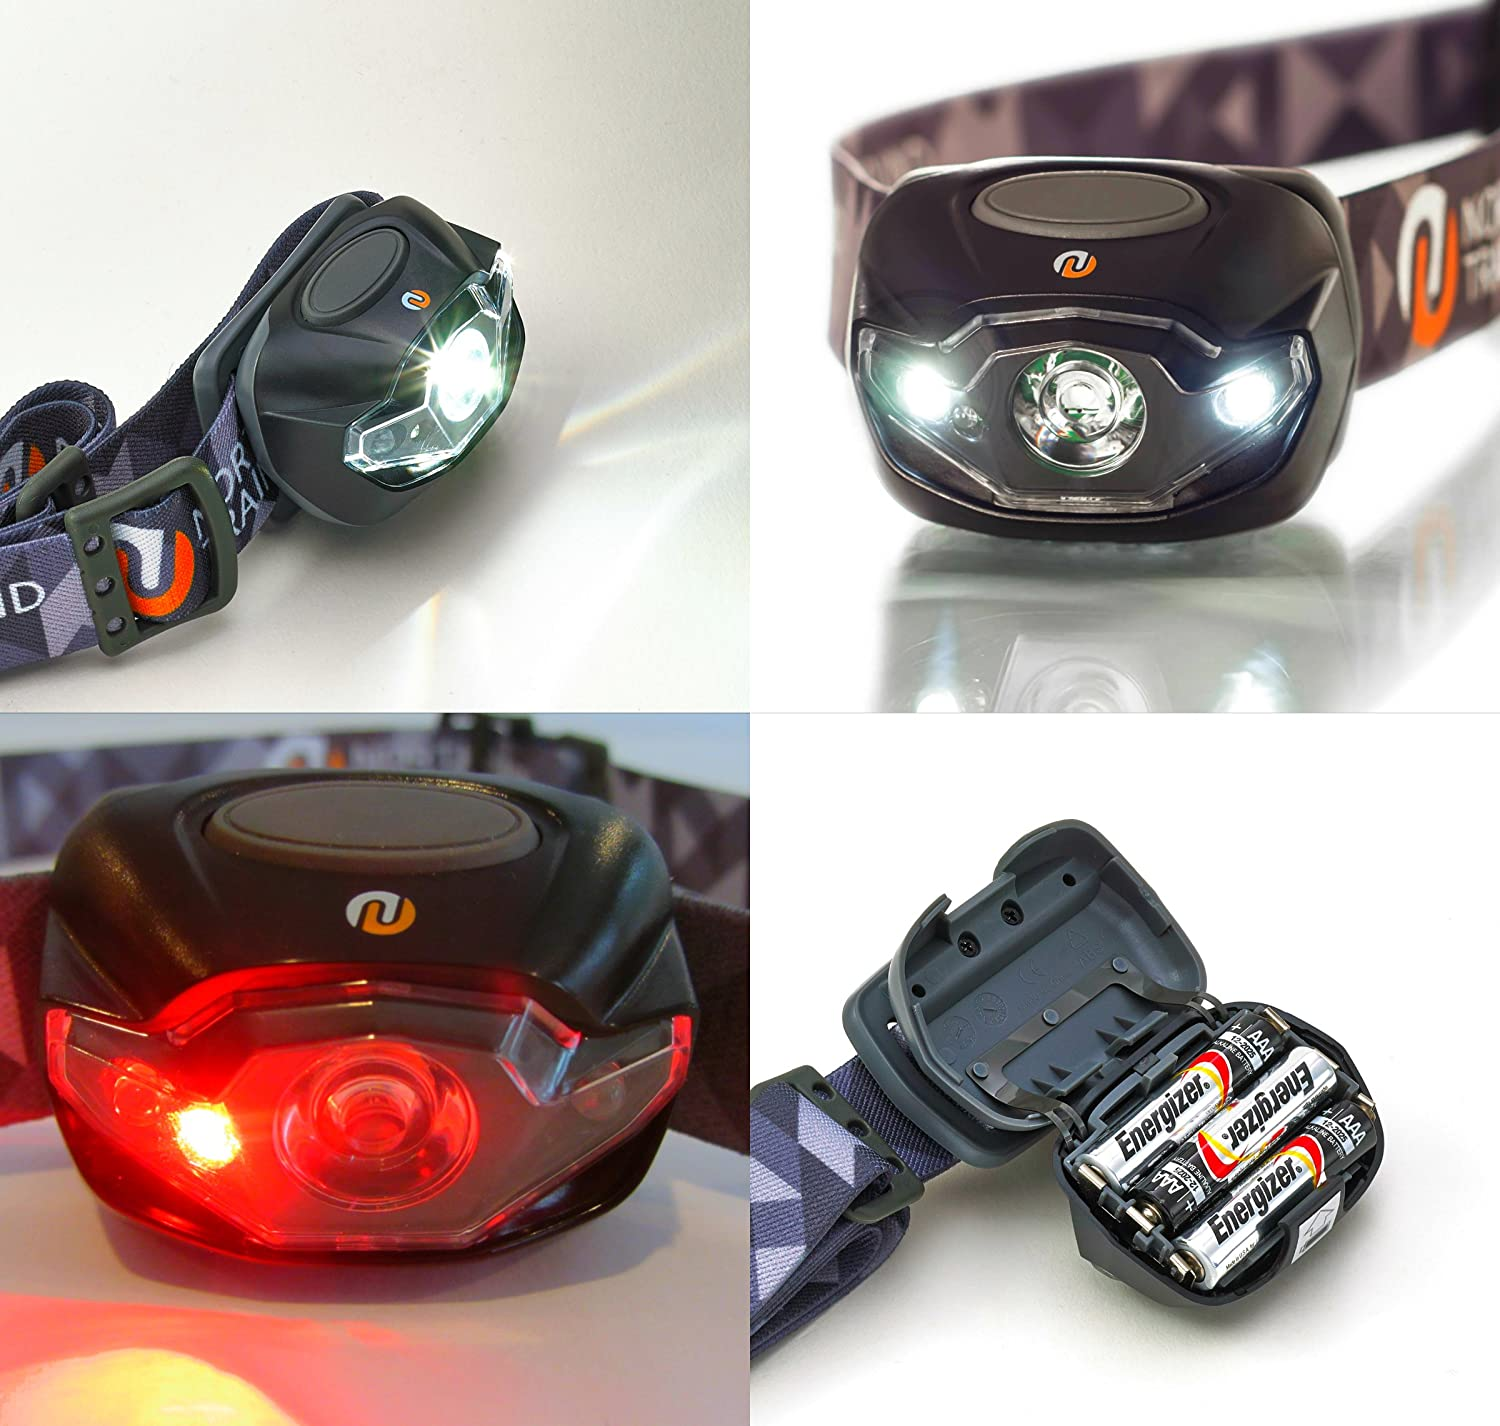 Ultra Bright Led Headlamp Flashlight Plus Hard Case For Exciting Scout Crafts 1 Or 2 Running Camping Hiking White Red Strobe Lights With Dimmer Only 32oz